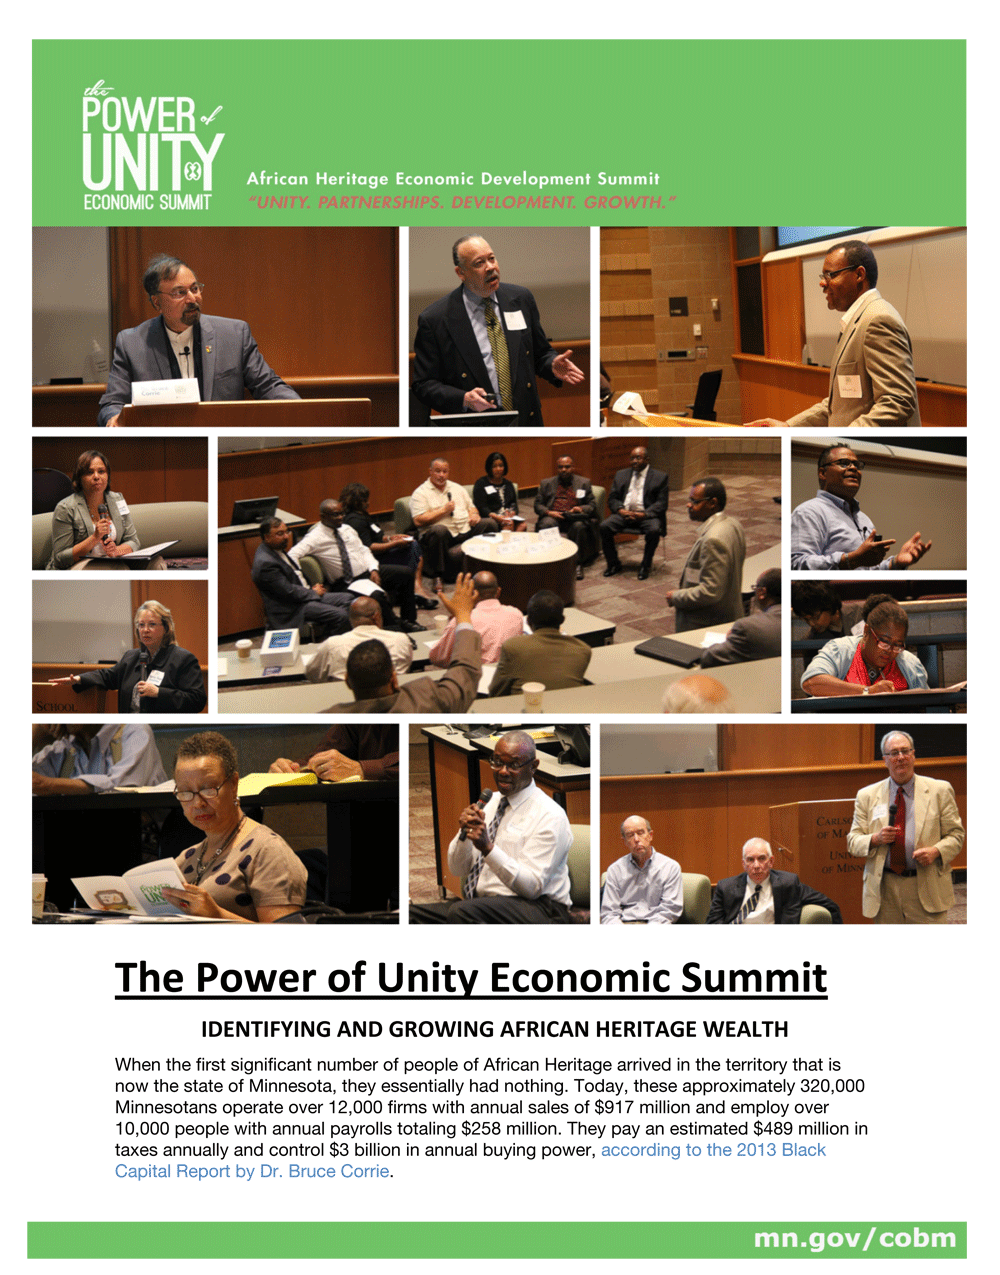 Recap of the 2014 Power of Unity Economic Summit